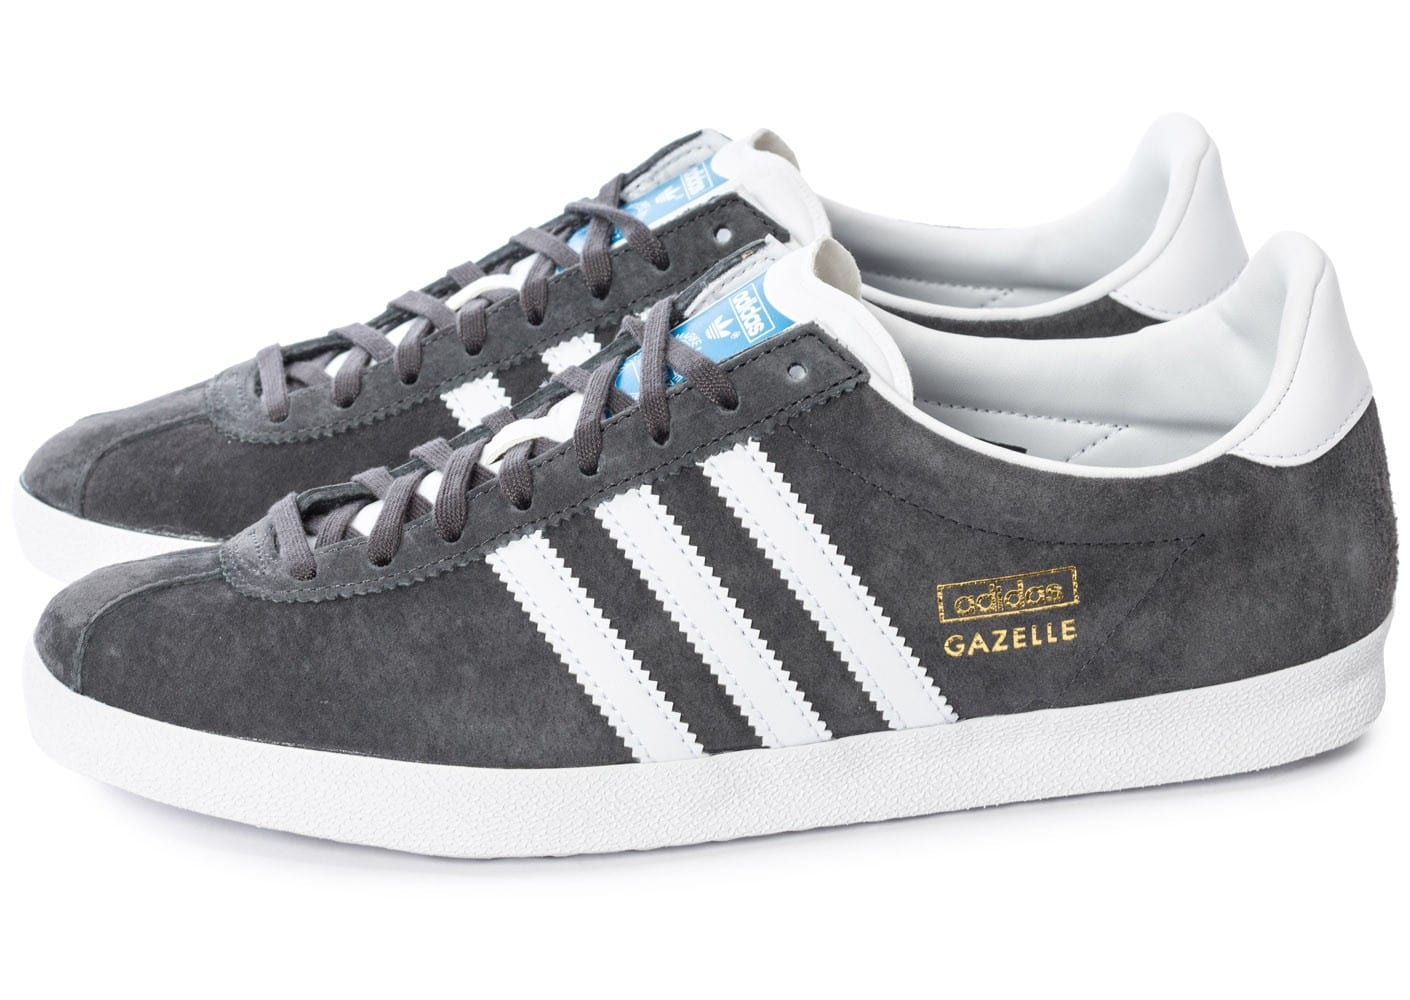 adidas gazelle og grise chaussures homme chausport. Black Bedroom Furniture Sets. Home Design Ideas